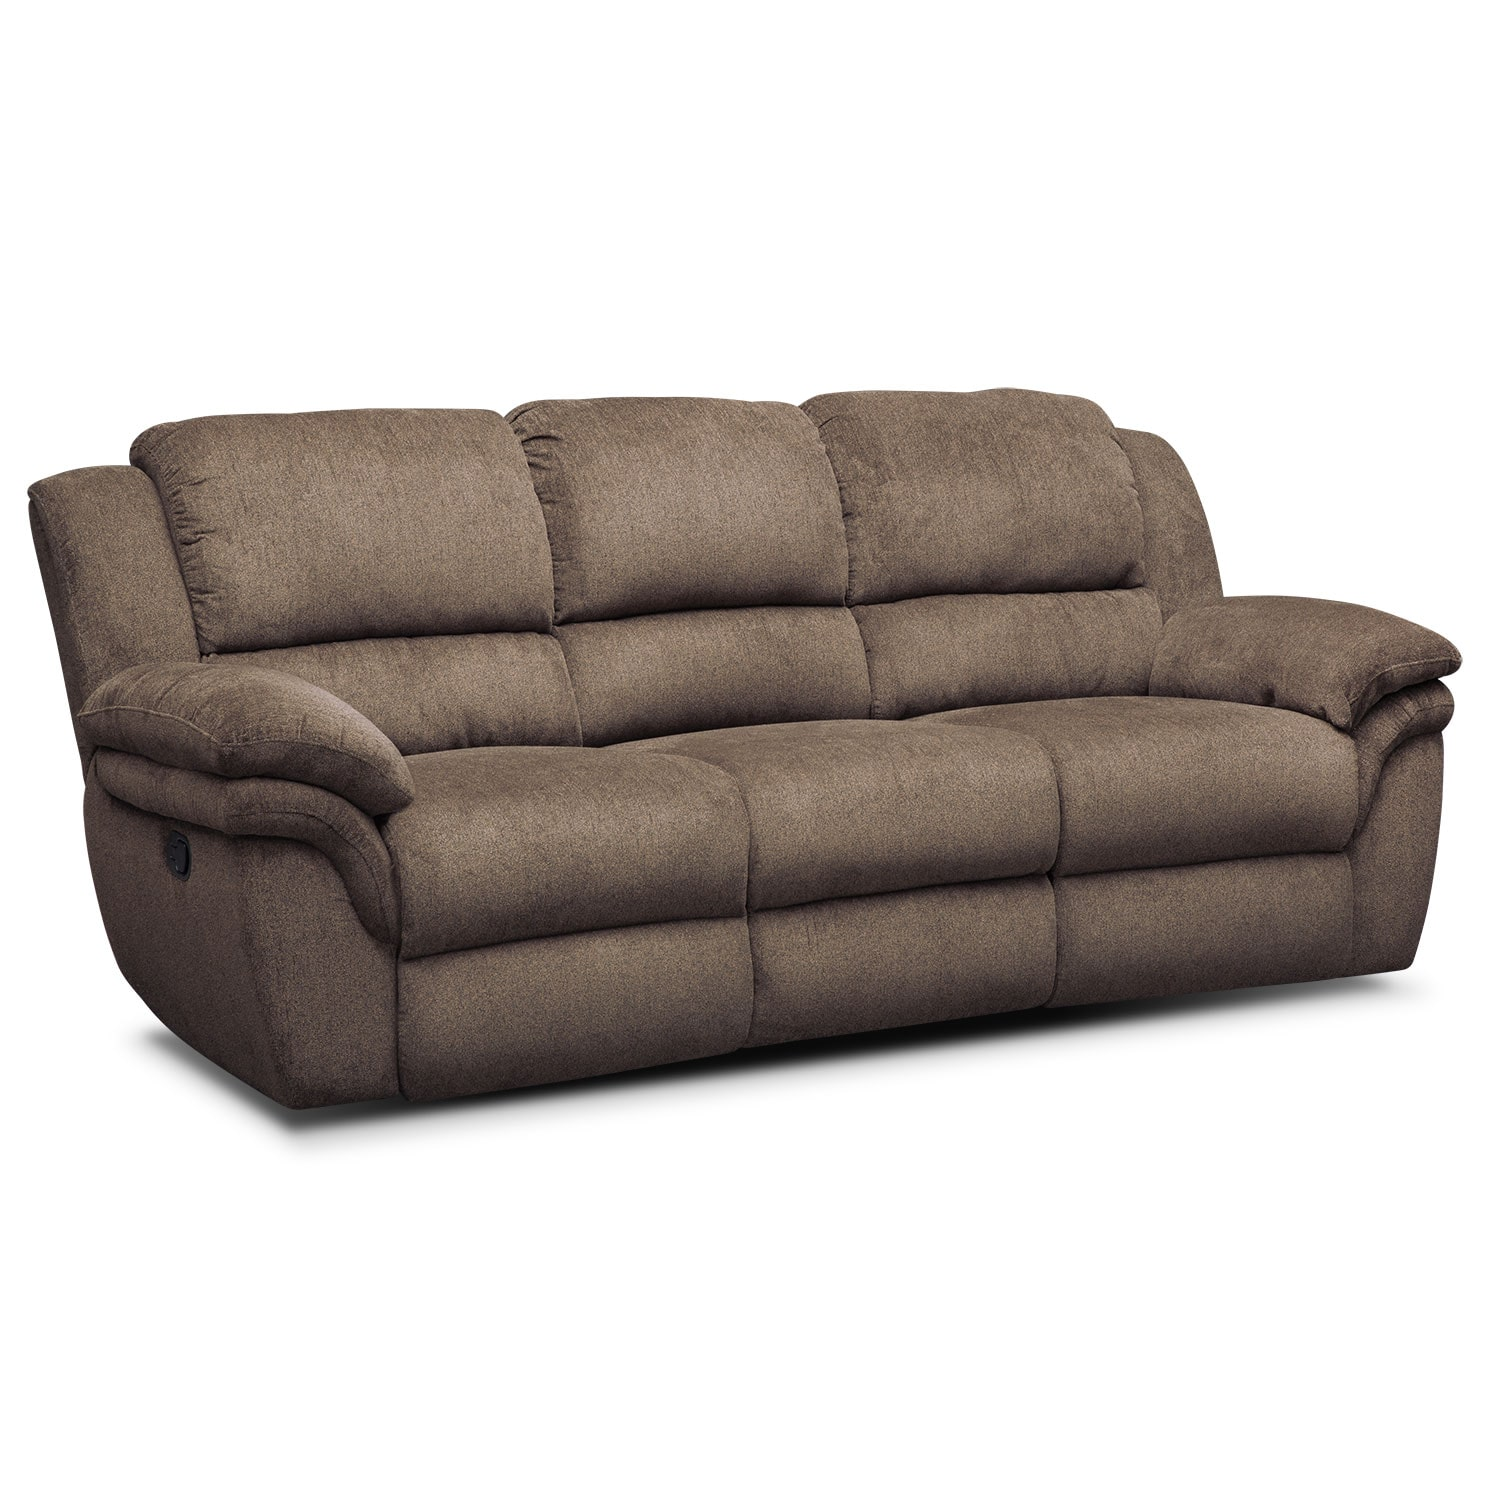 Aldo Manual Dual-Reclining Sofa, Loveseat And Recliner Set - Mocha By  Factory Outlet